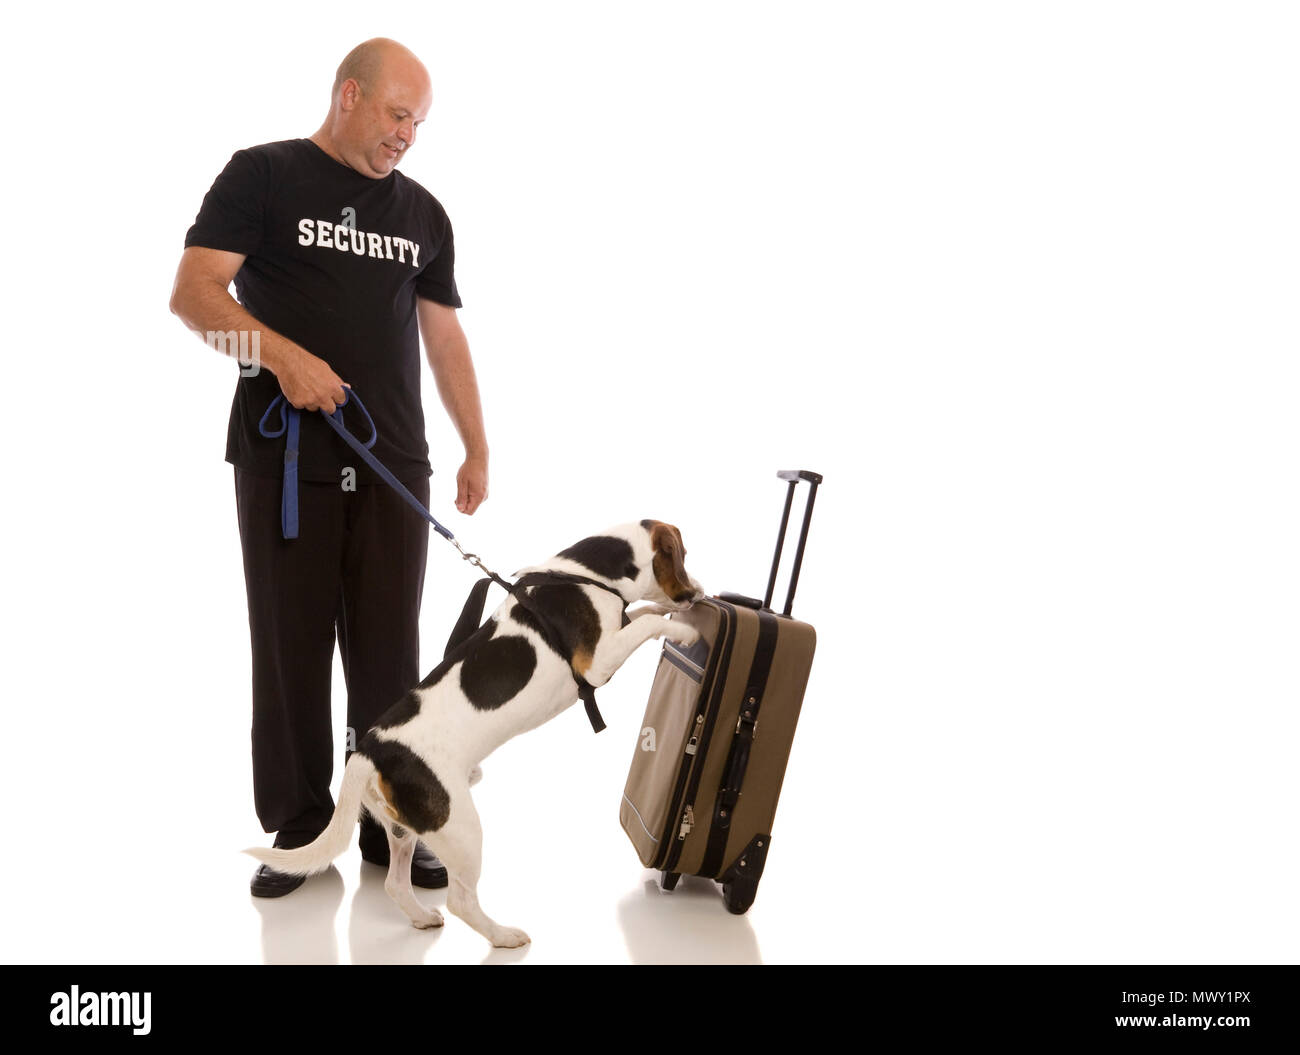 A sniffer dog showing interest in a bag, possibly containing illegal substances or explosives. - Stock Image